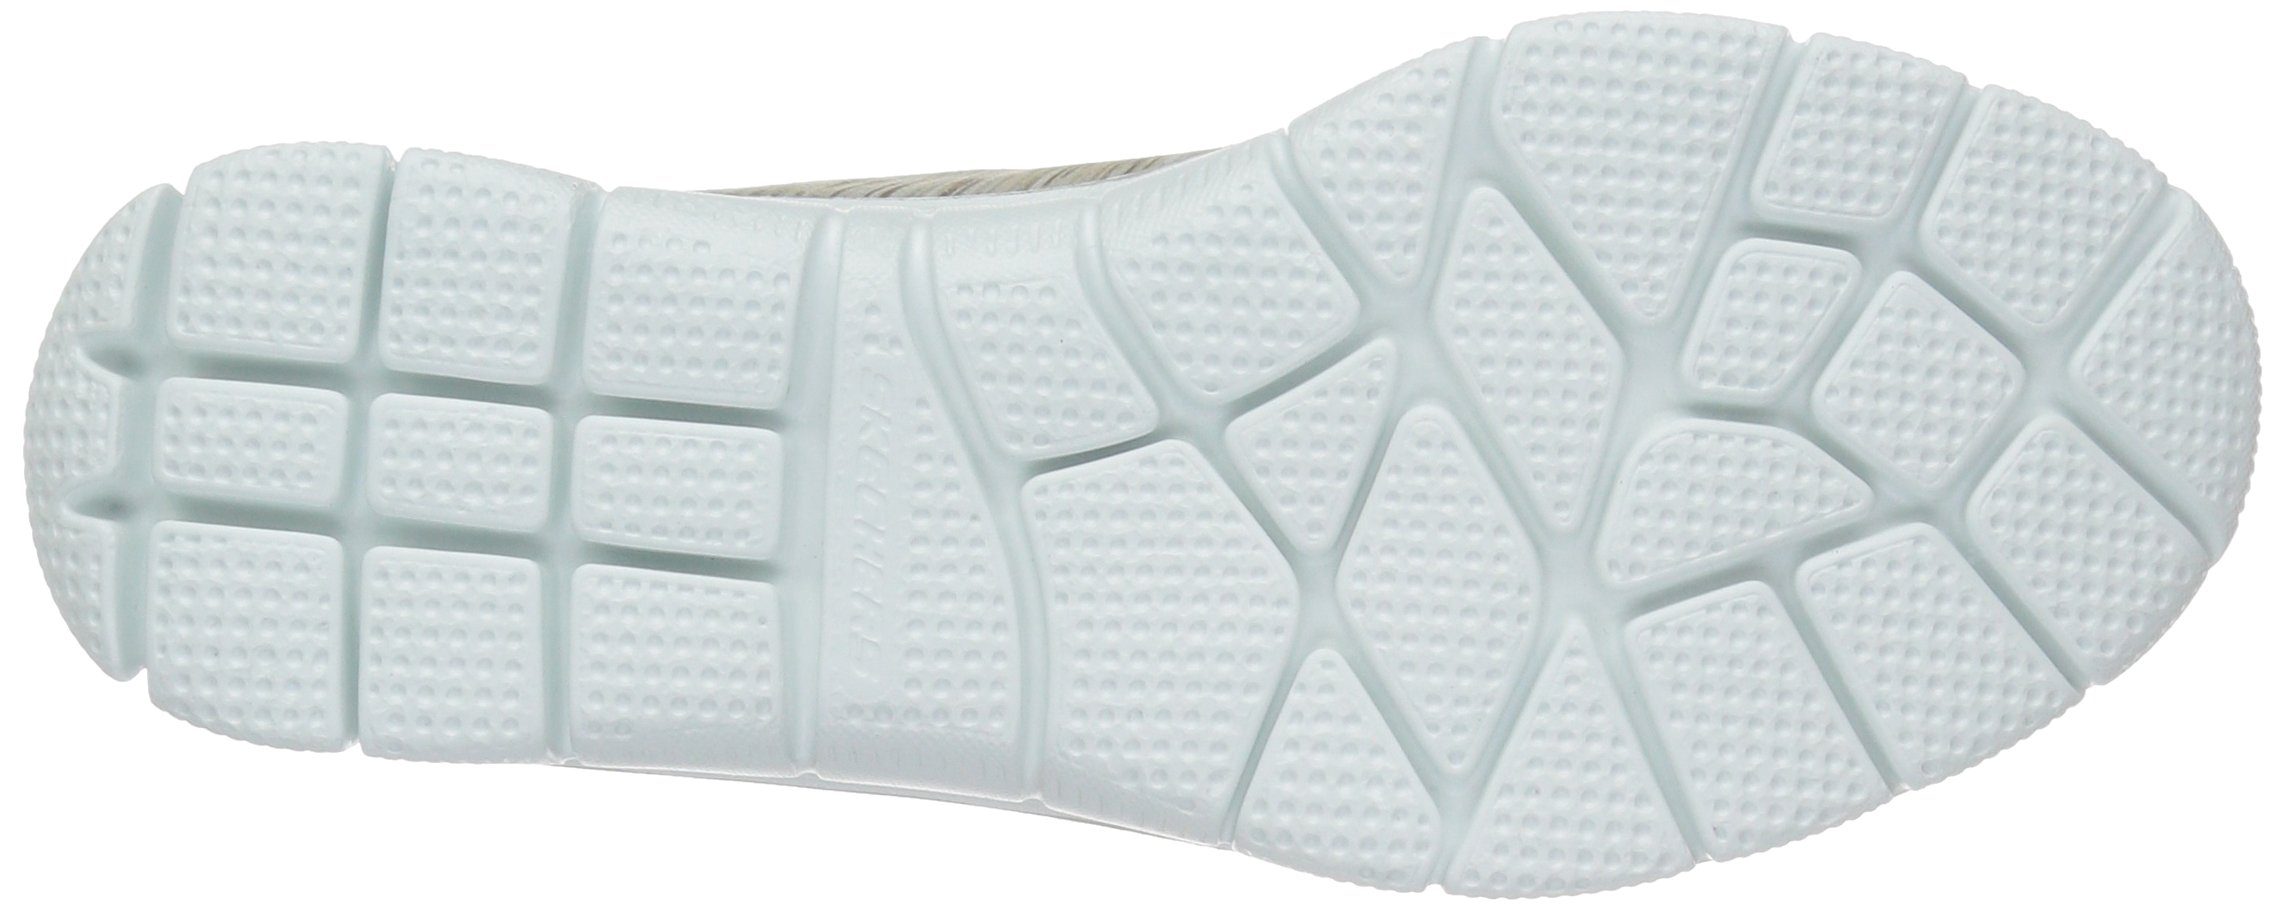 Skechers Women's Empire Game On Memory Foam Sneakers Shoes, Taupe, 6 B(M) US by Skechers (Image #3)